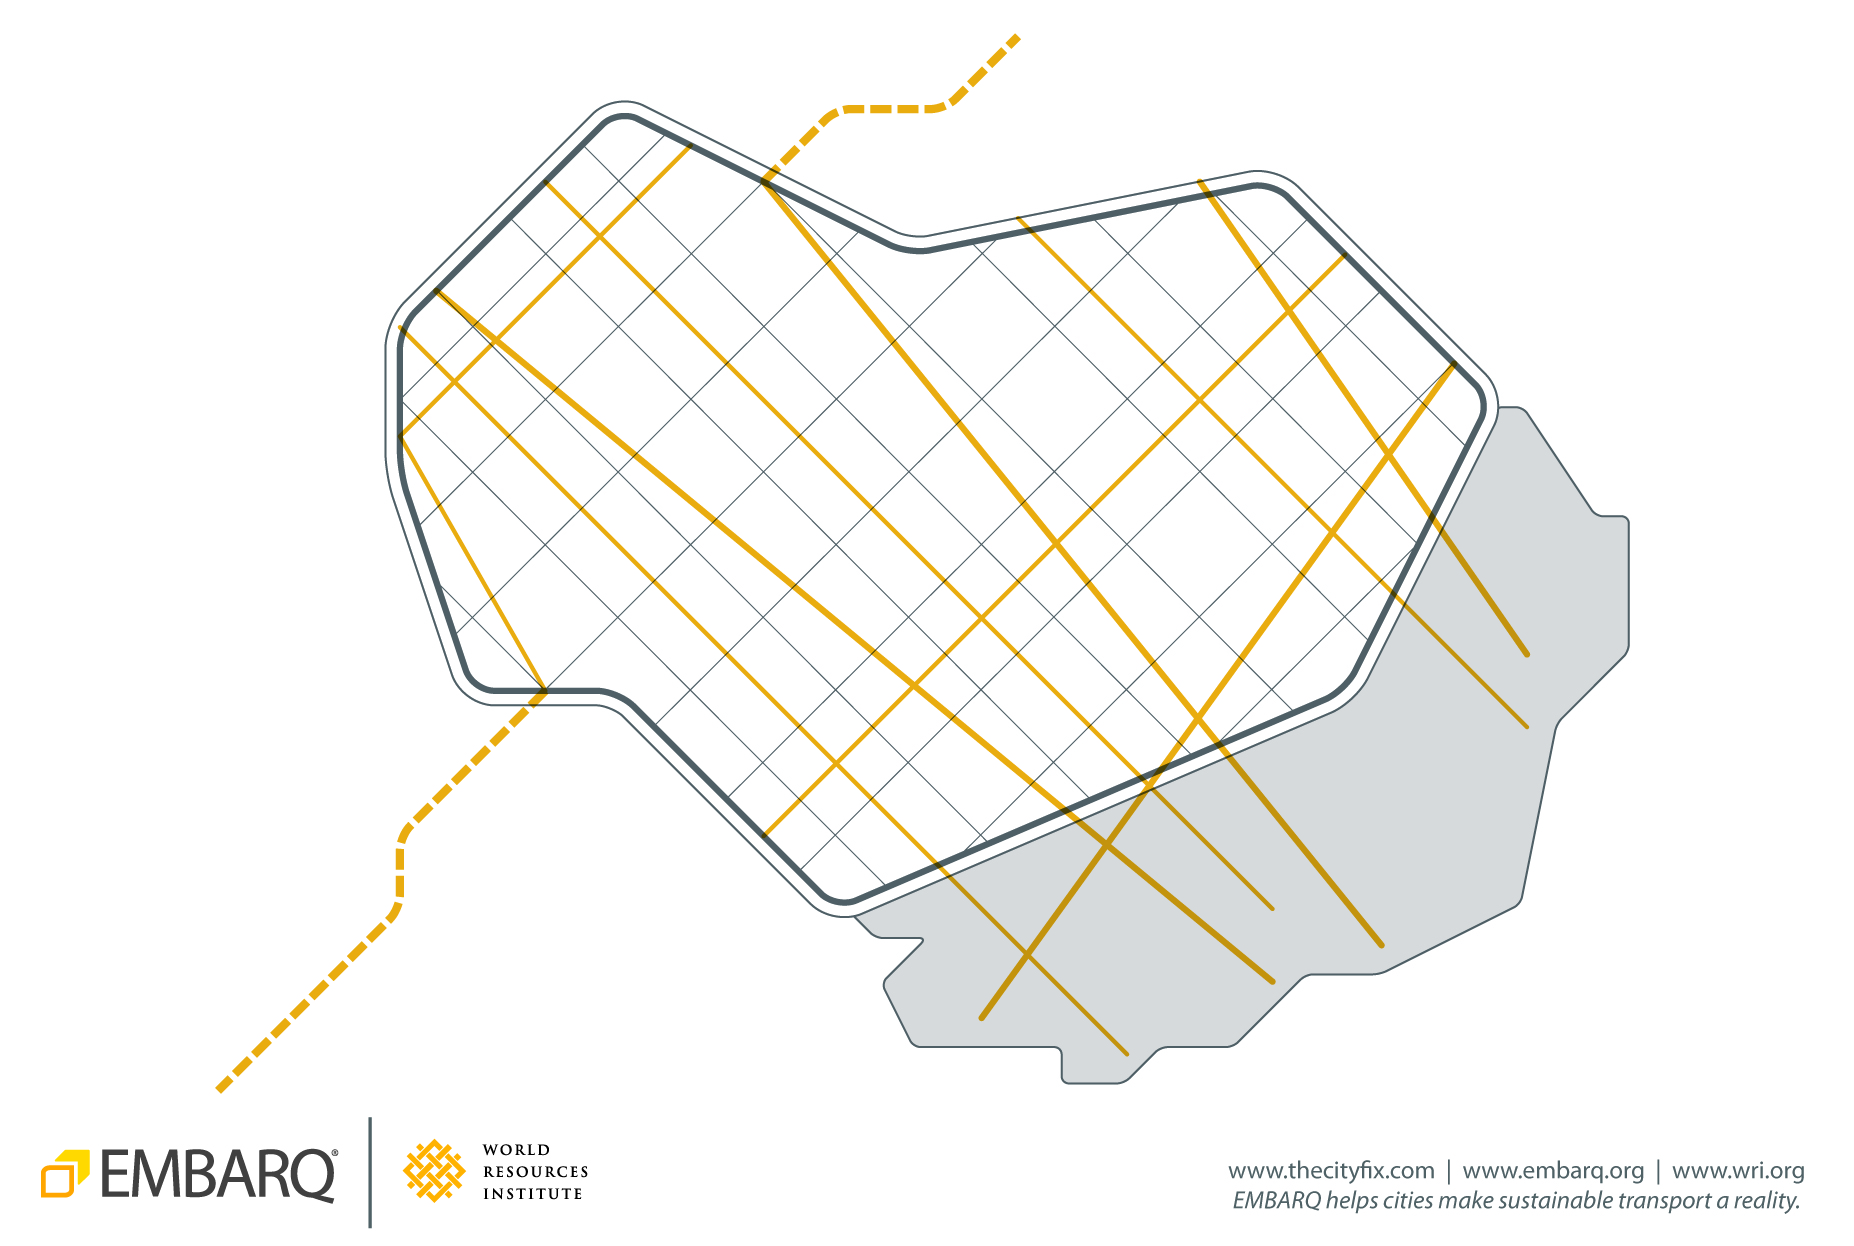 <p>A street network ensures that neighborhoods are linked together, and that future developments connect to the existing urban fabric through the continuation of its grid.</p>